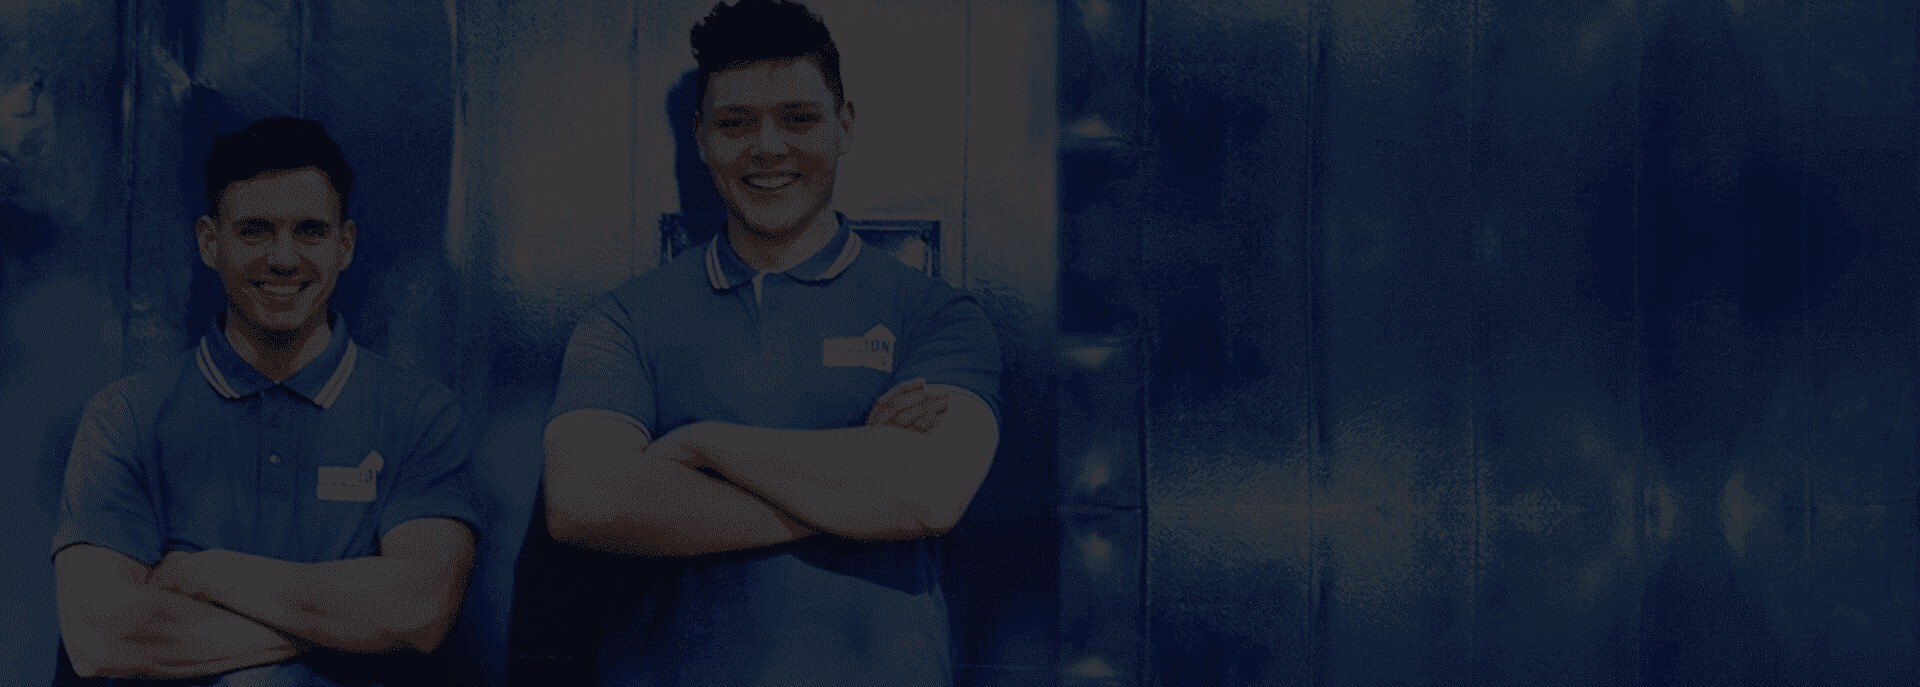 Move on Removals (@moveonremovals) Cover Image